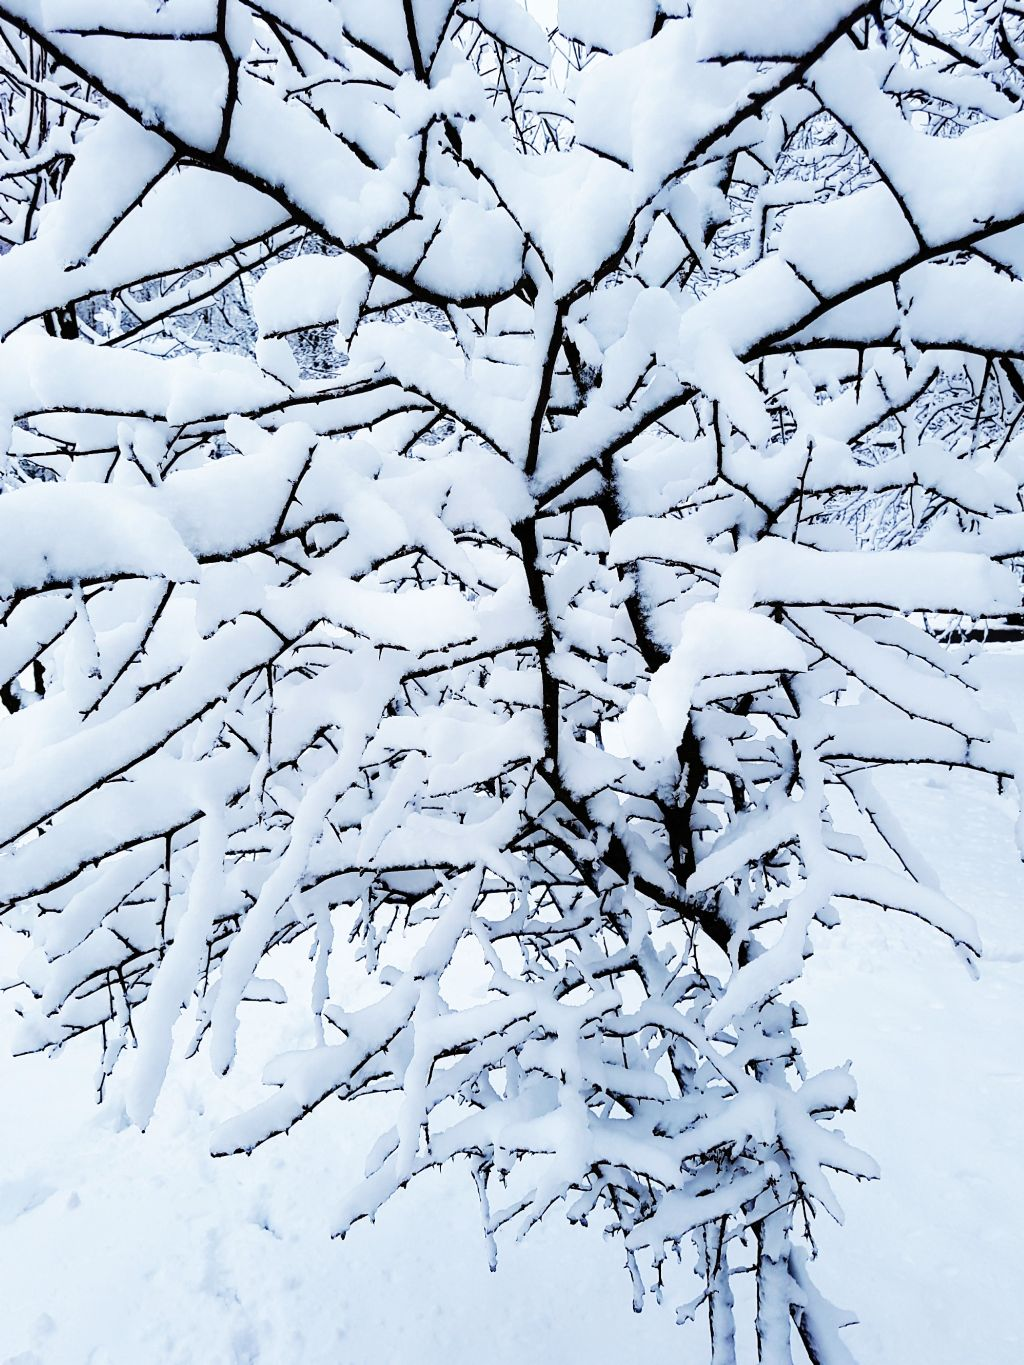 5th place 💙 Thank you all! #winter #snow #naturephotography  #pcwhite #white